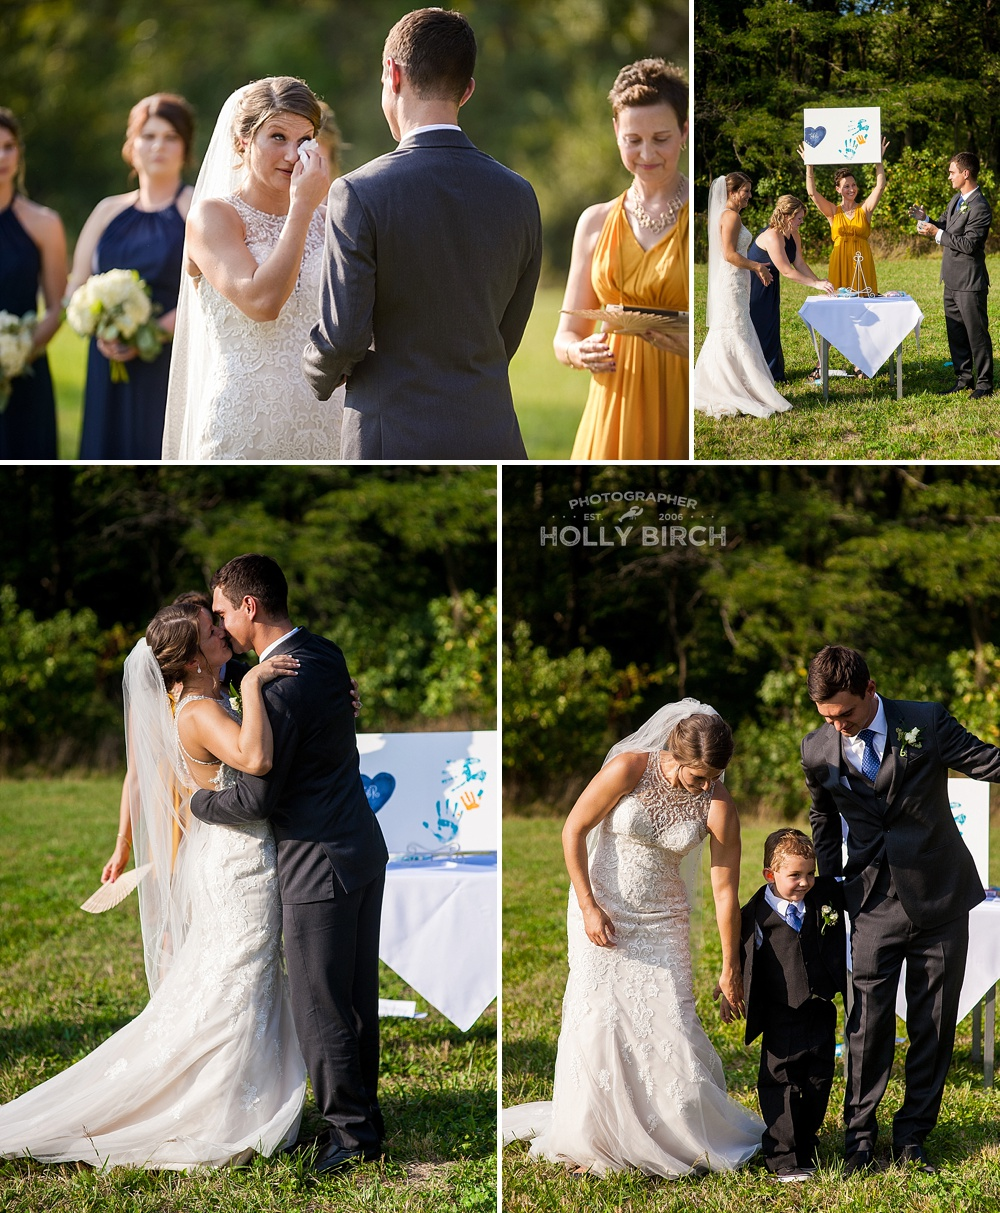 wedding ceremony in full sun on private property